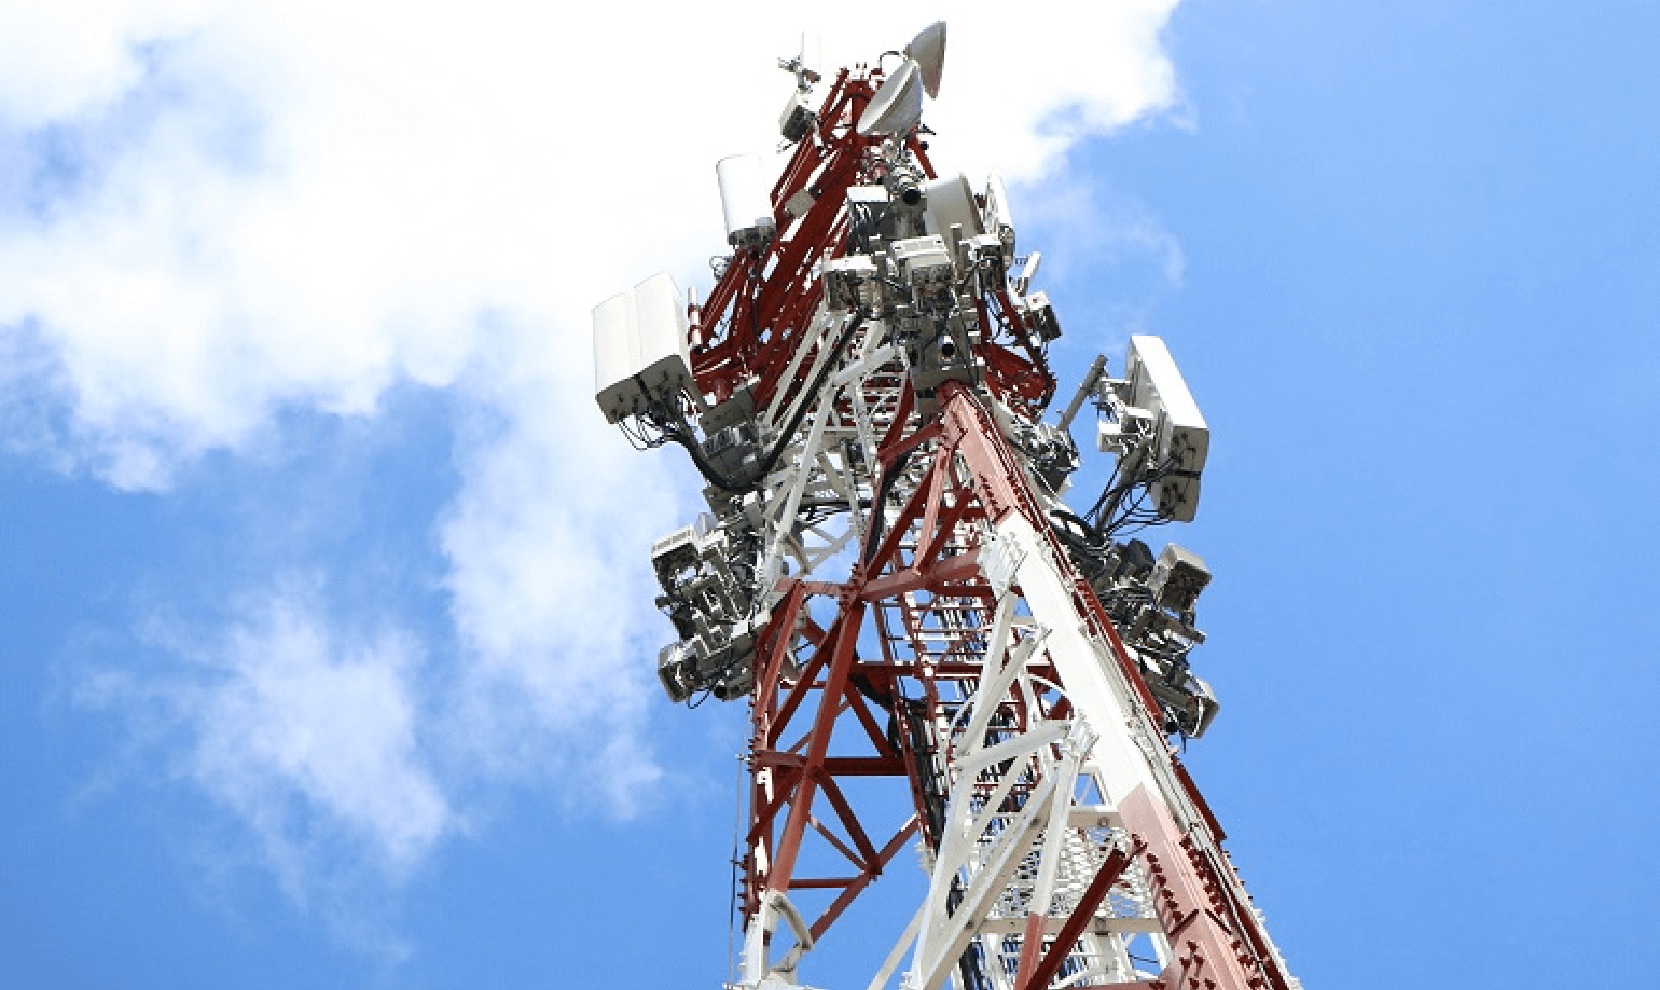 philippine-telecom-giant-pldt-to-create-innovative-solutions-in-2021